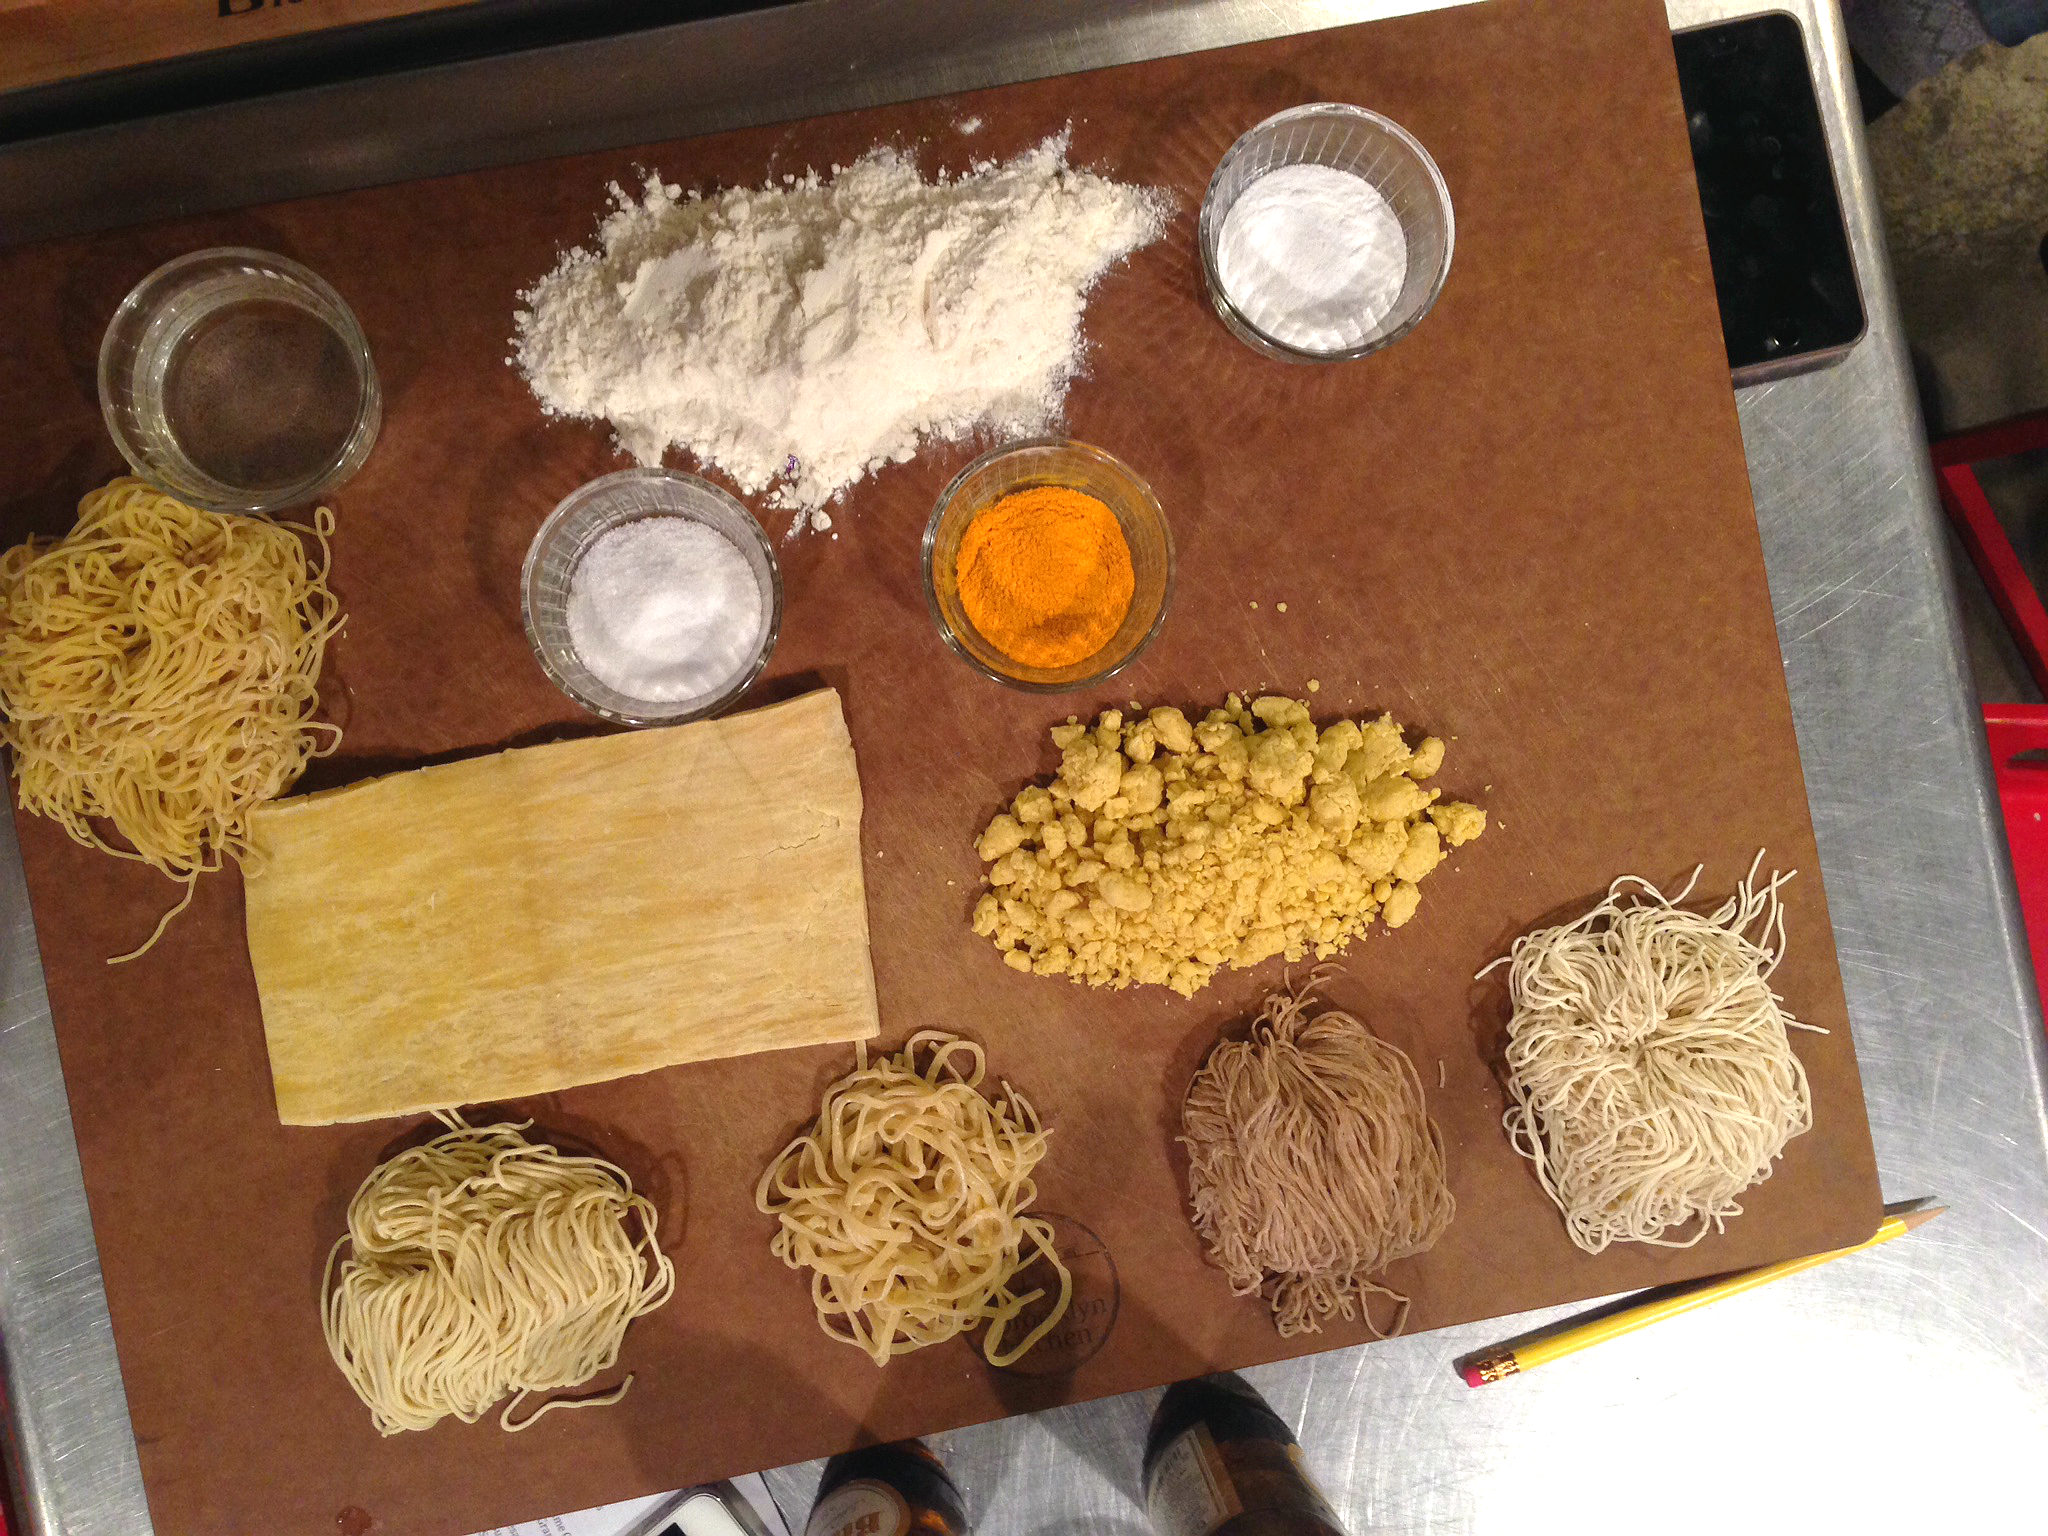 The set up at The Brooklyn Kitchen's ramen class